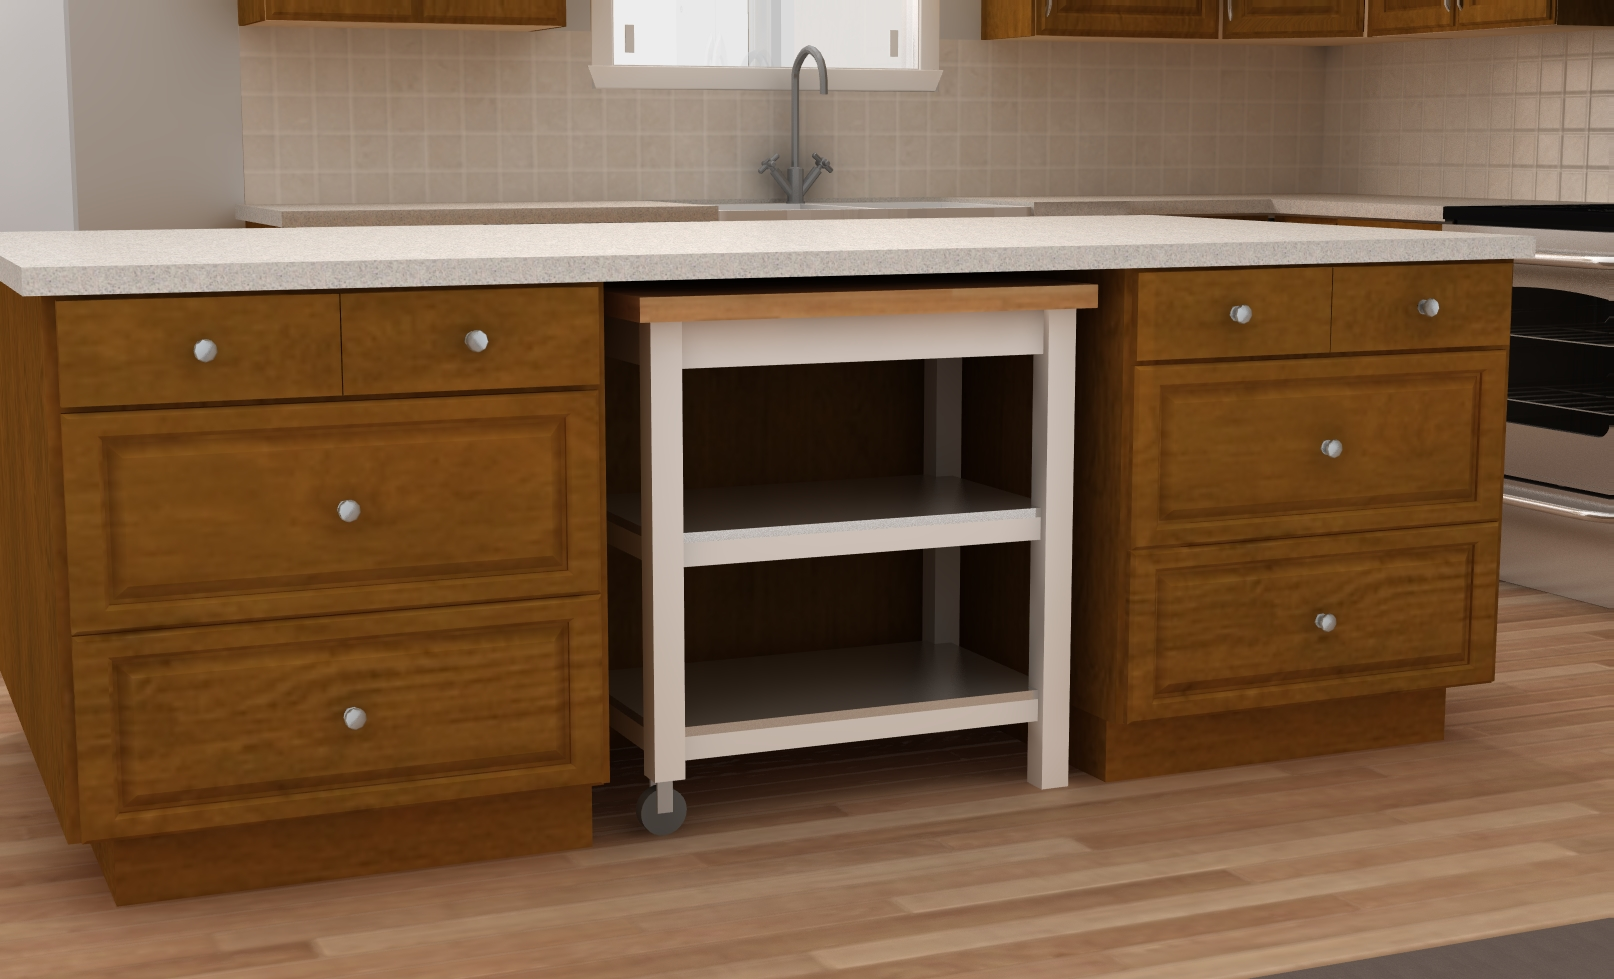 ikea kitchen carts stenstorp ikea kitchen countertops A STENSTORP cart 00 is a valuable tool when you have limited counter space